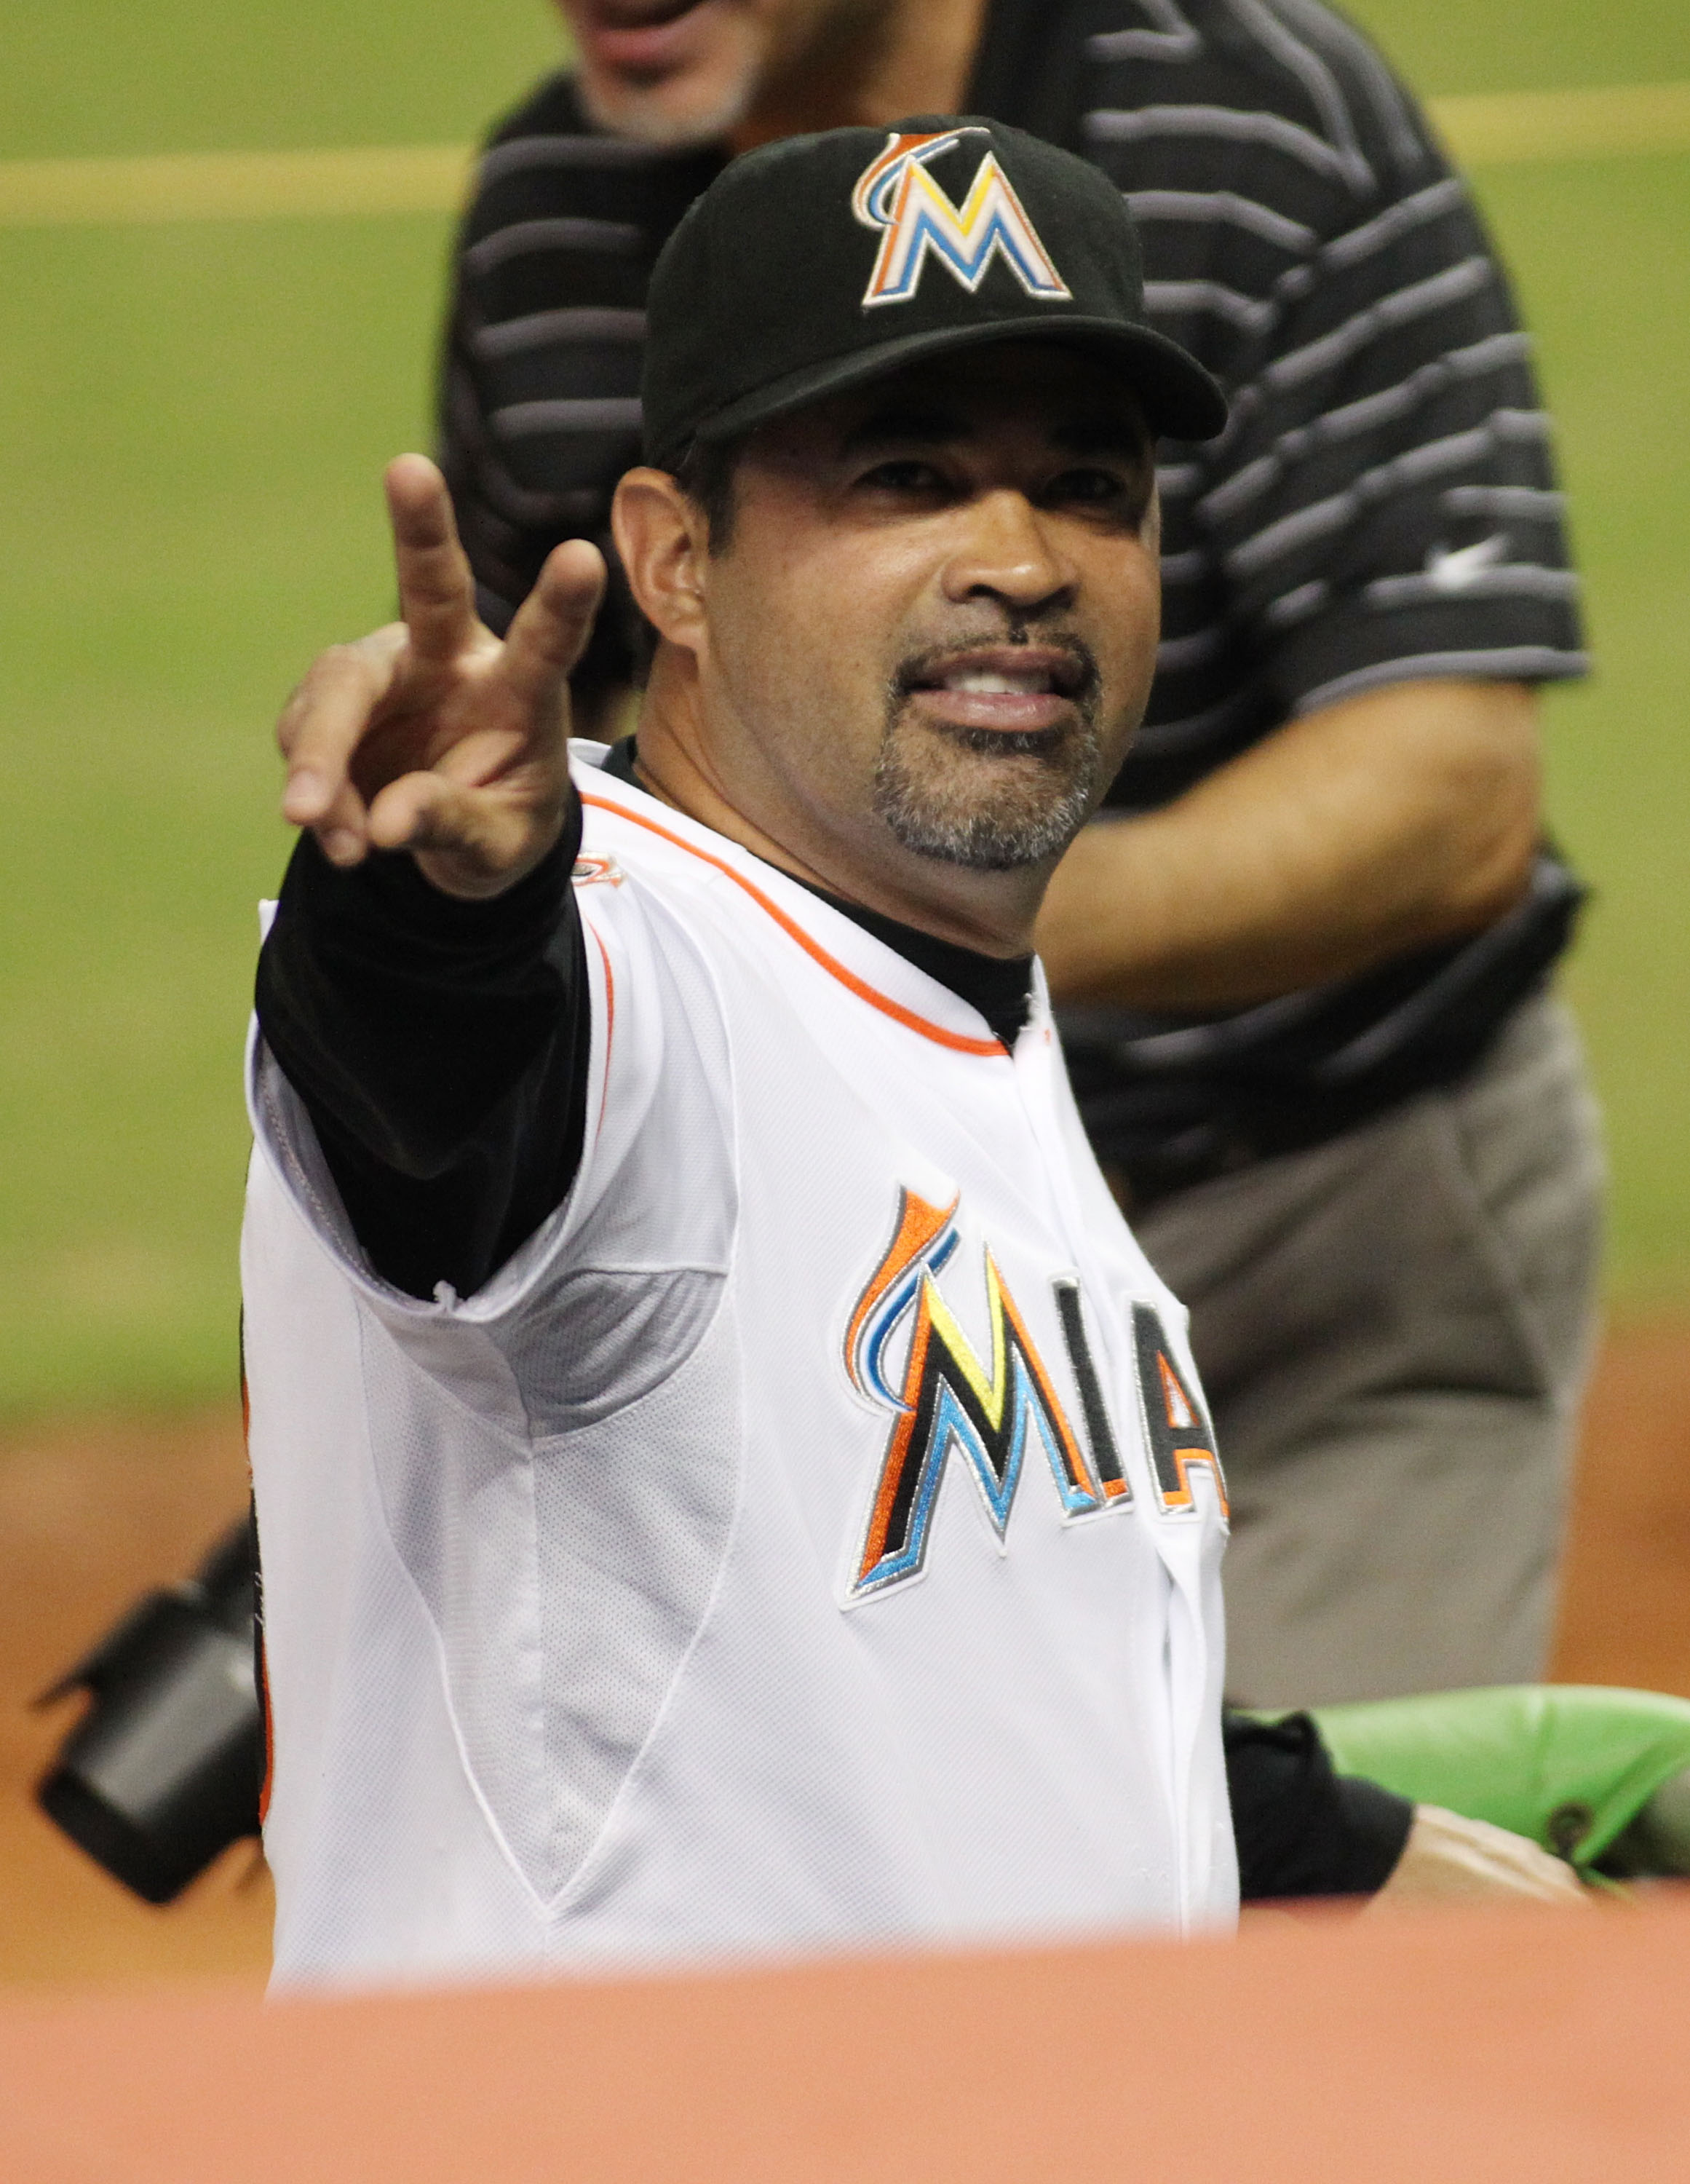 The Marlins are in last place in the NL East in Ozzie Guillen's first season as manager. (Getty Images)